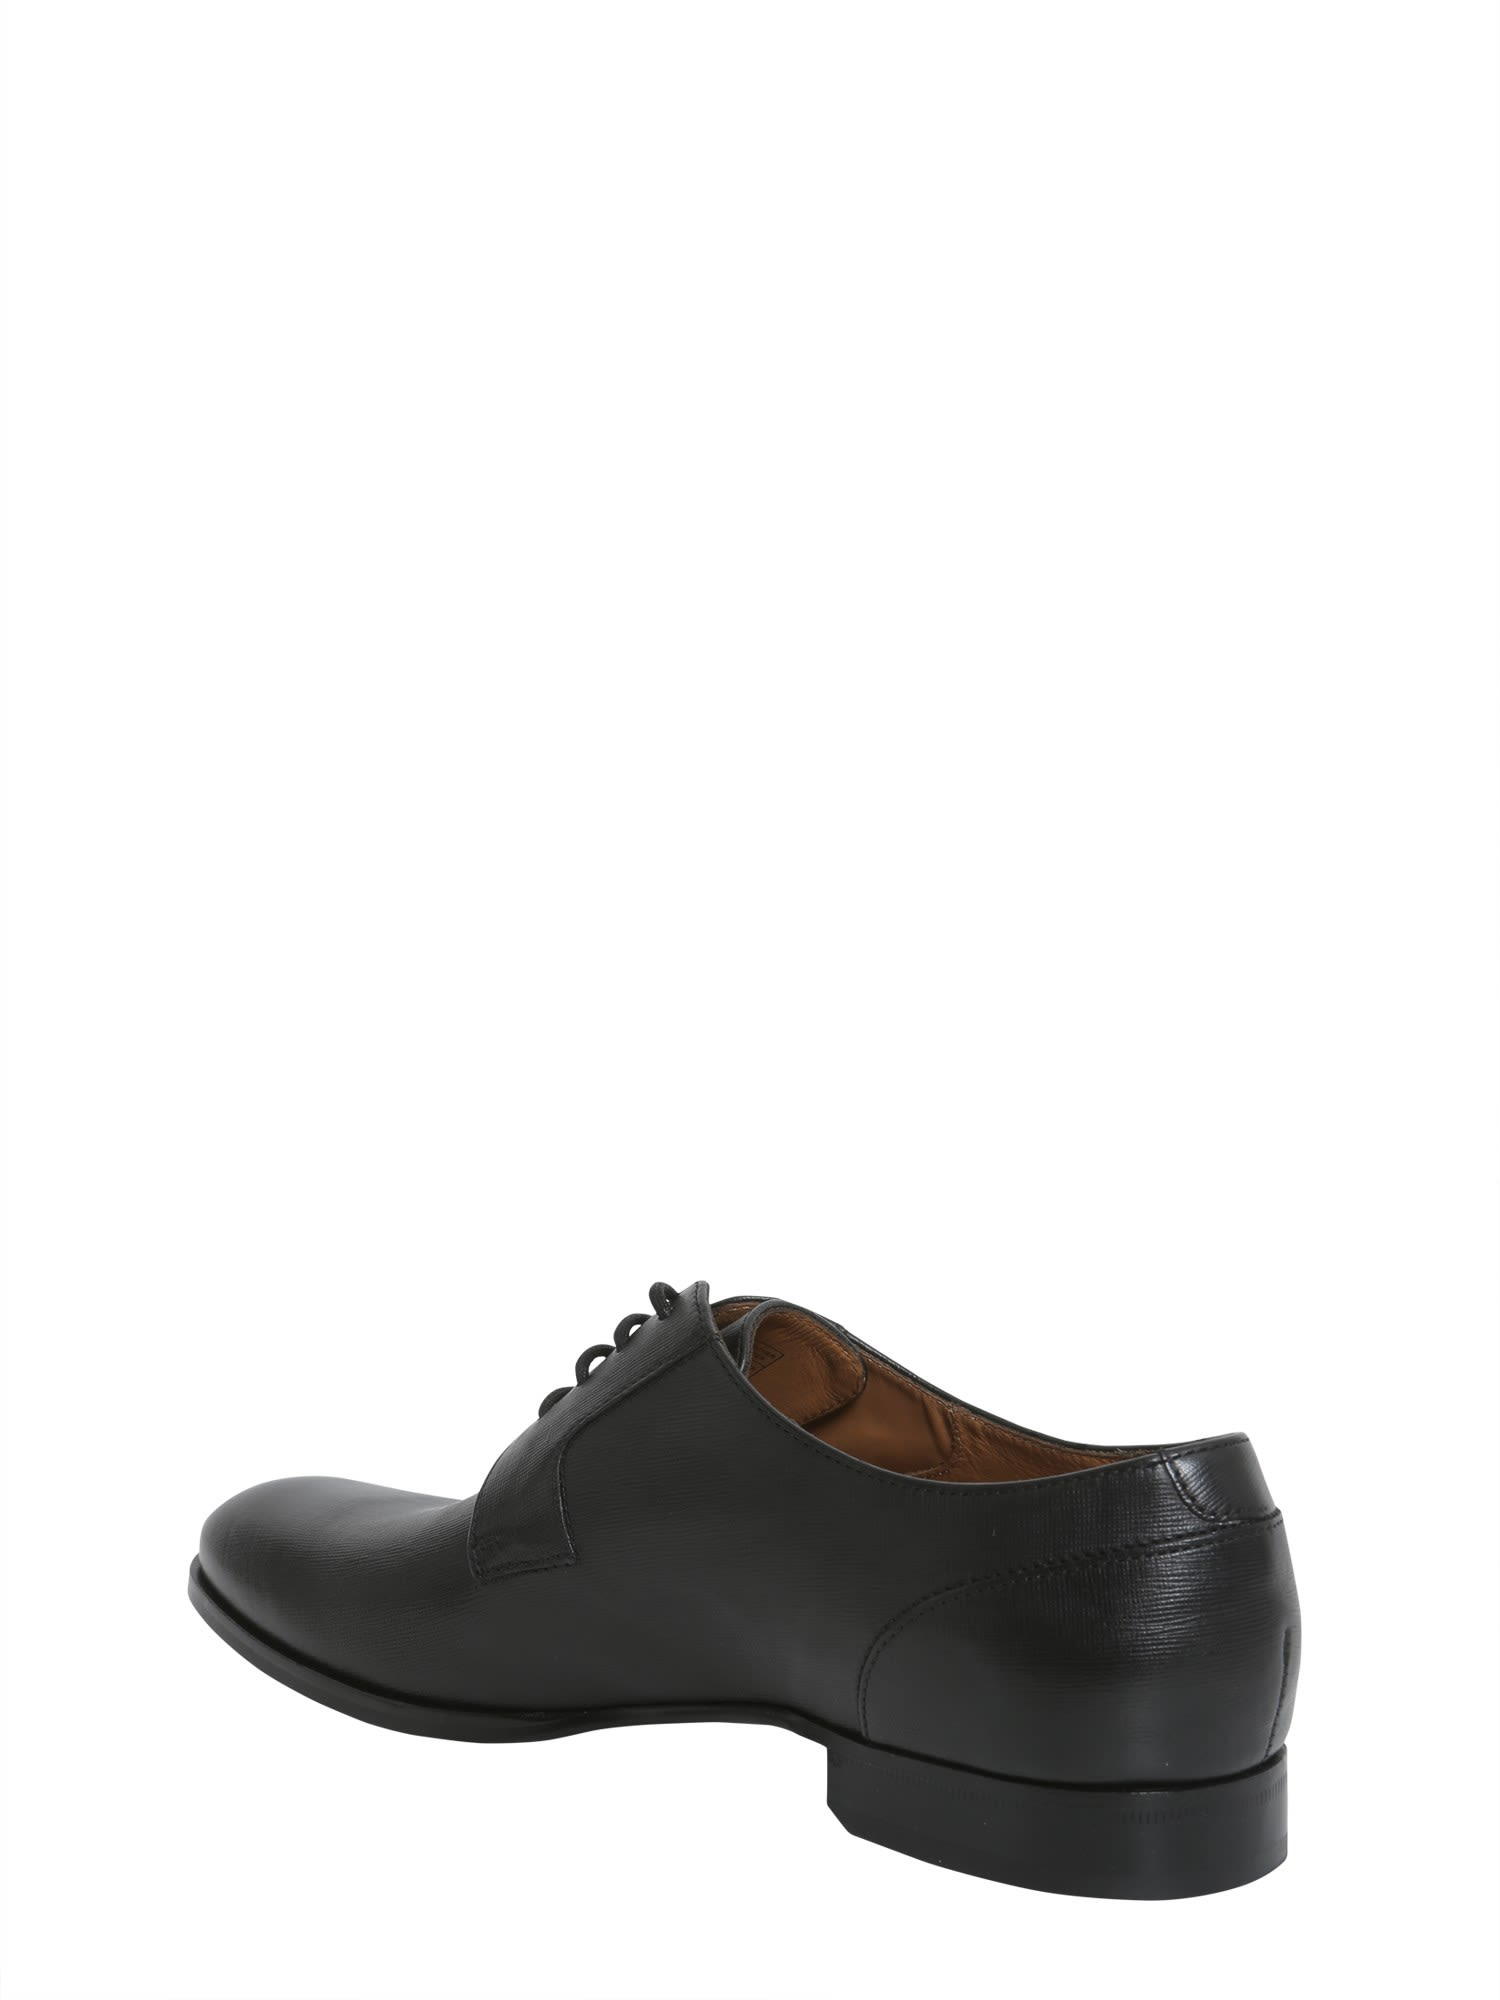 HUGO BOSS Saffiano leather derby shoes Z9DyKFpfD